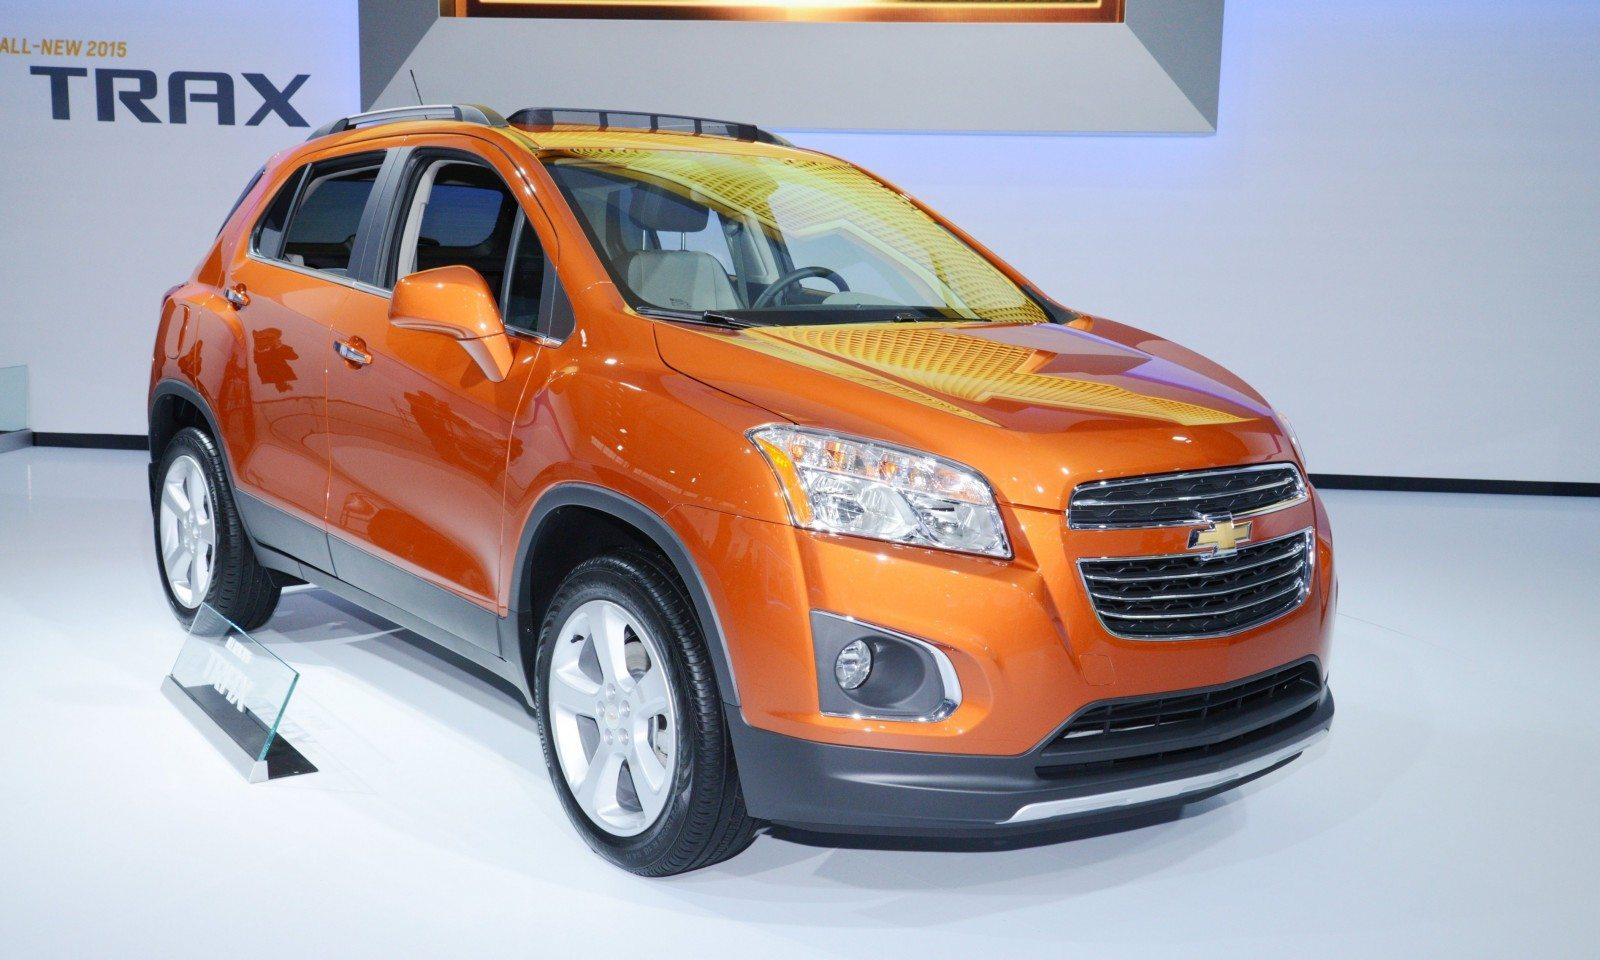 2015 Chevrolet Trax USA Arrival In September 16